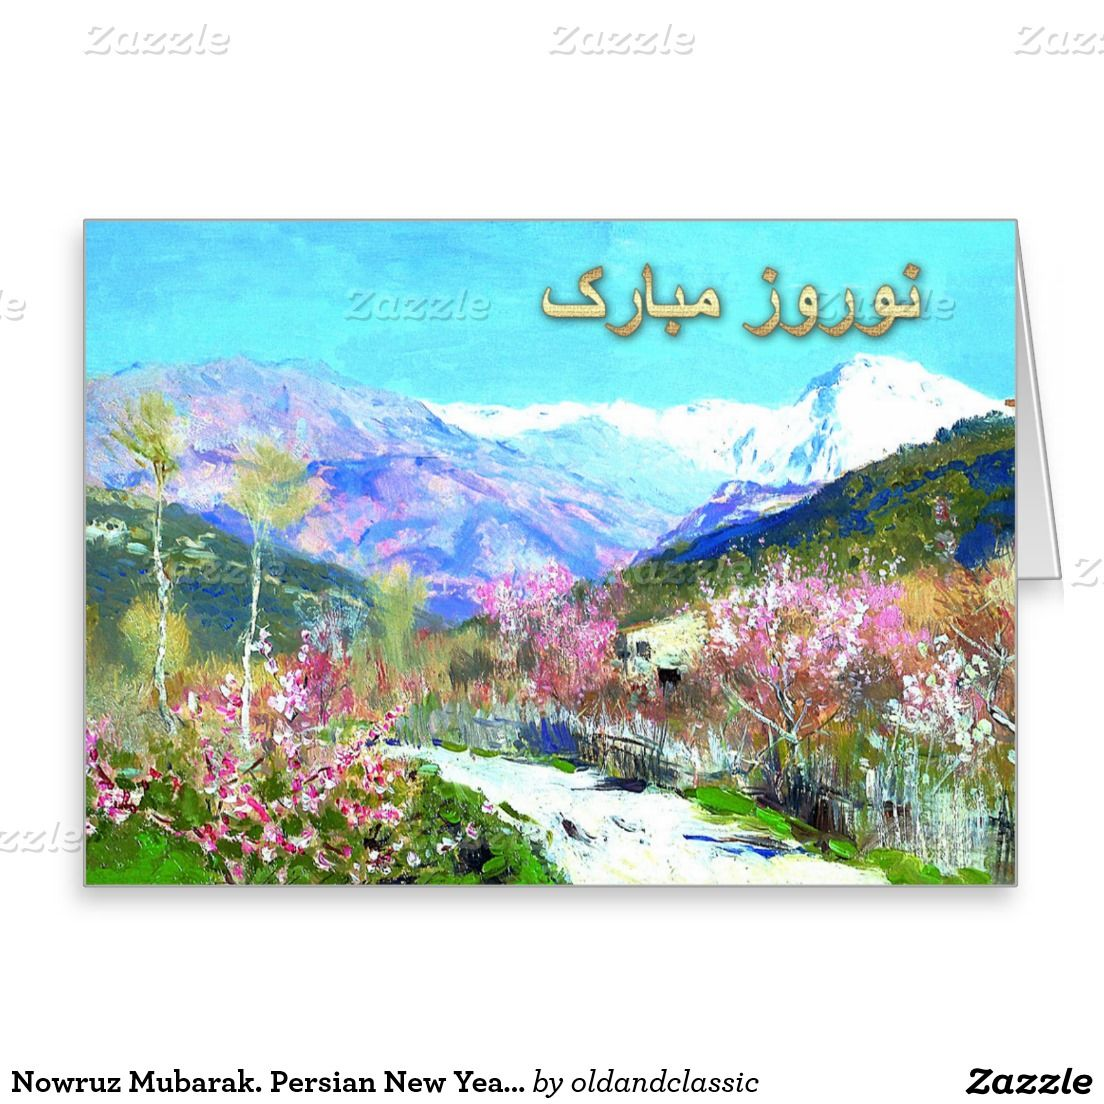 norooz mubarak nowruz mubarak happy nowruz persian new year cards created by oldandclassic kristyandbryce Gallery